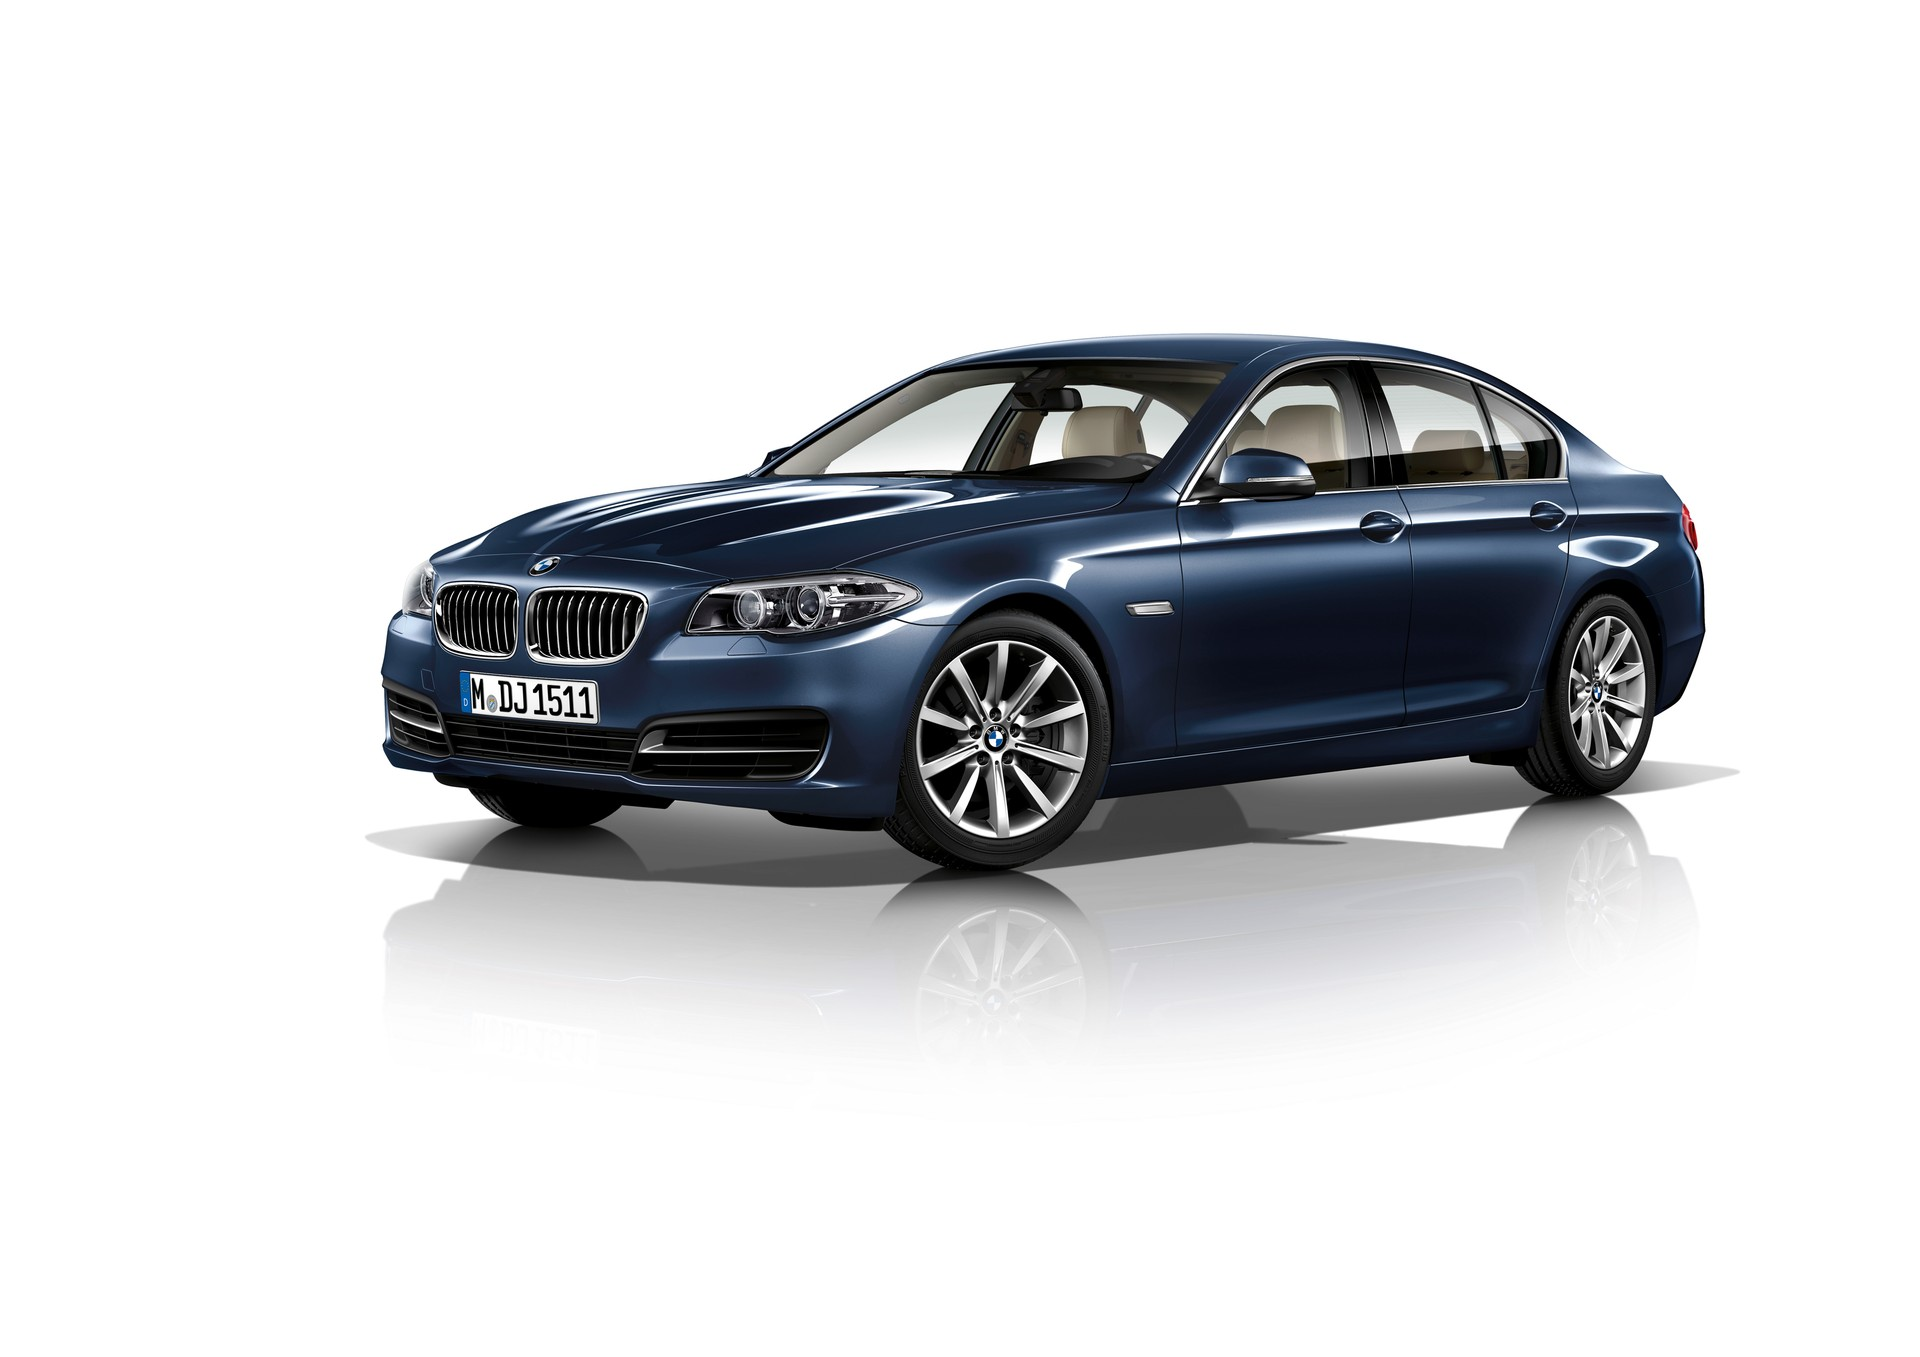 2015 BMW 5-Series Review, Ratings, Specs, Prices, and Photos - The